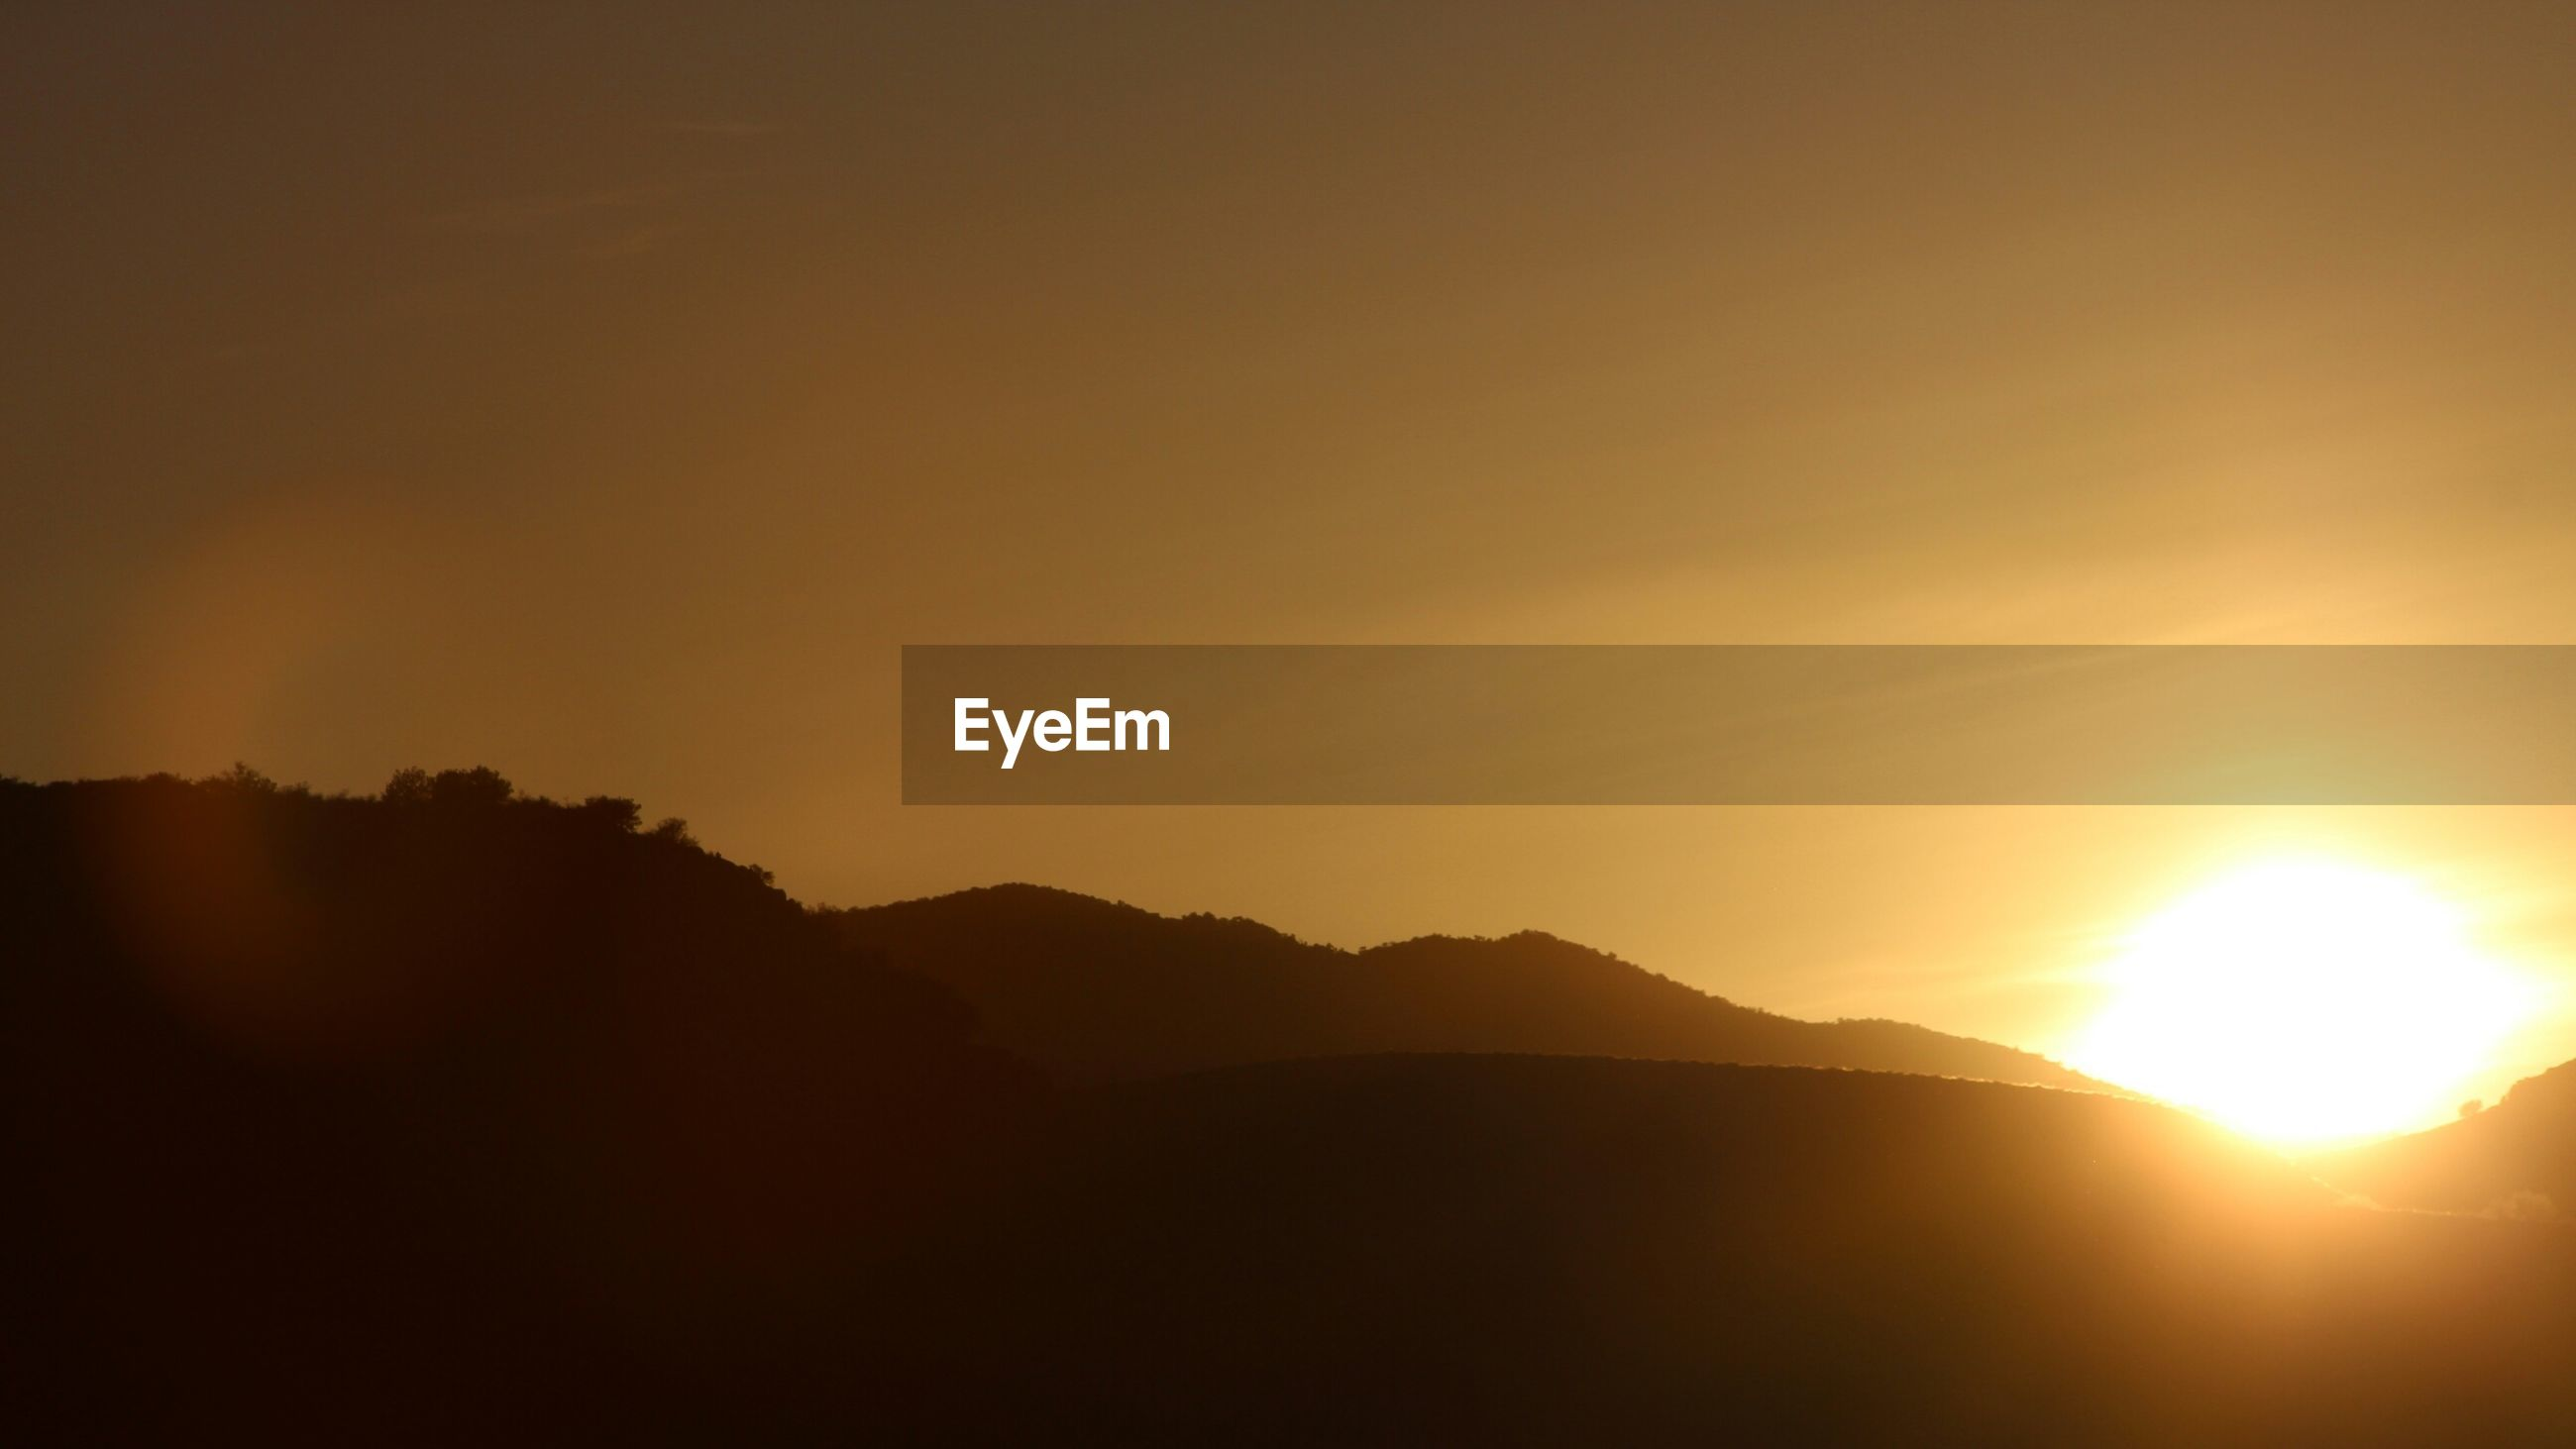 sunset, sun, silhouette, mountain, scenics, tranquil scene, beauty in nature, tranquility, orange color, sunlight, sunbeam, idyllic, nature, mountain range, lens flare, sky, copy space, landscape, clear sky, outdoors